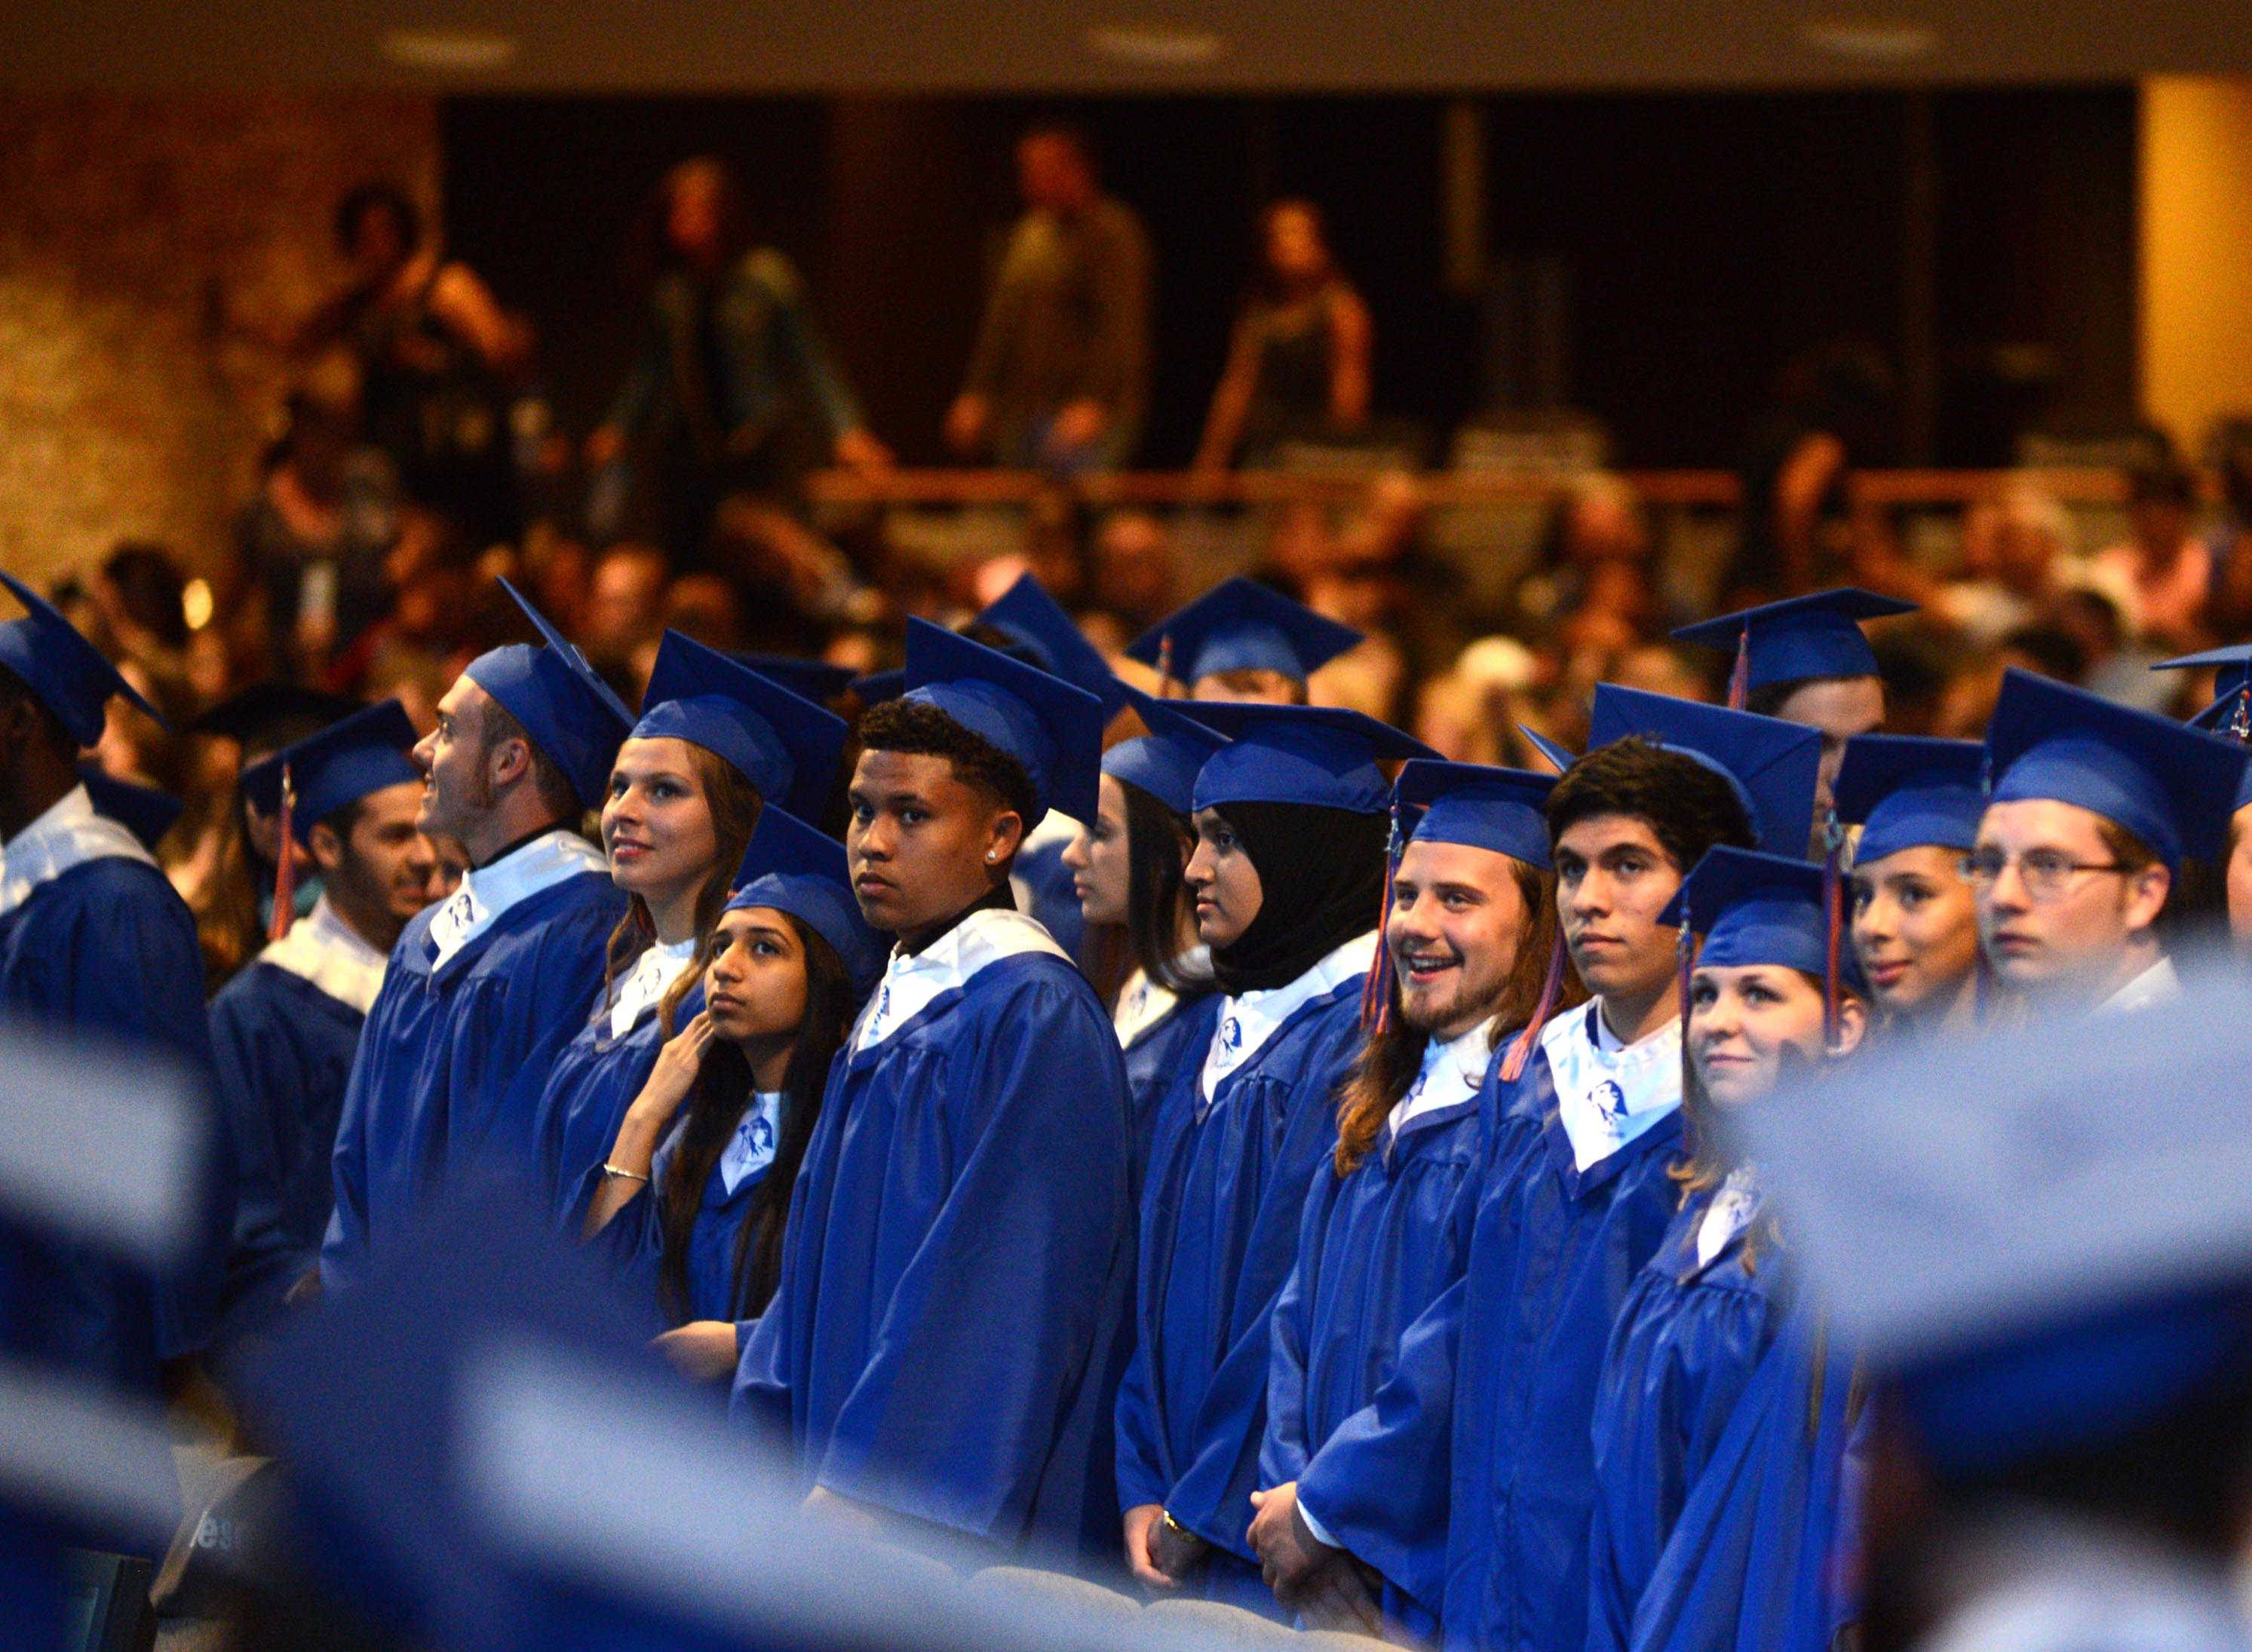 Members of the Class of 2014 file into the auditorium at Willow Creek Church in South Barrington on Thursday night for the Hoffman Estates High School graduation.